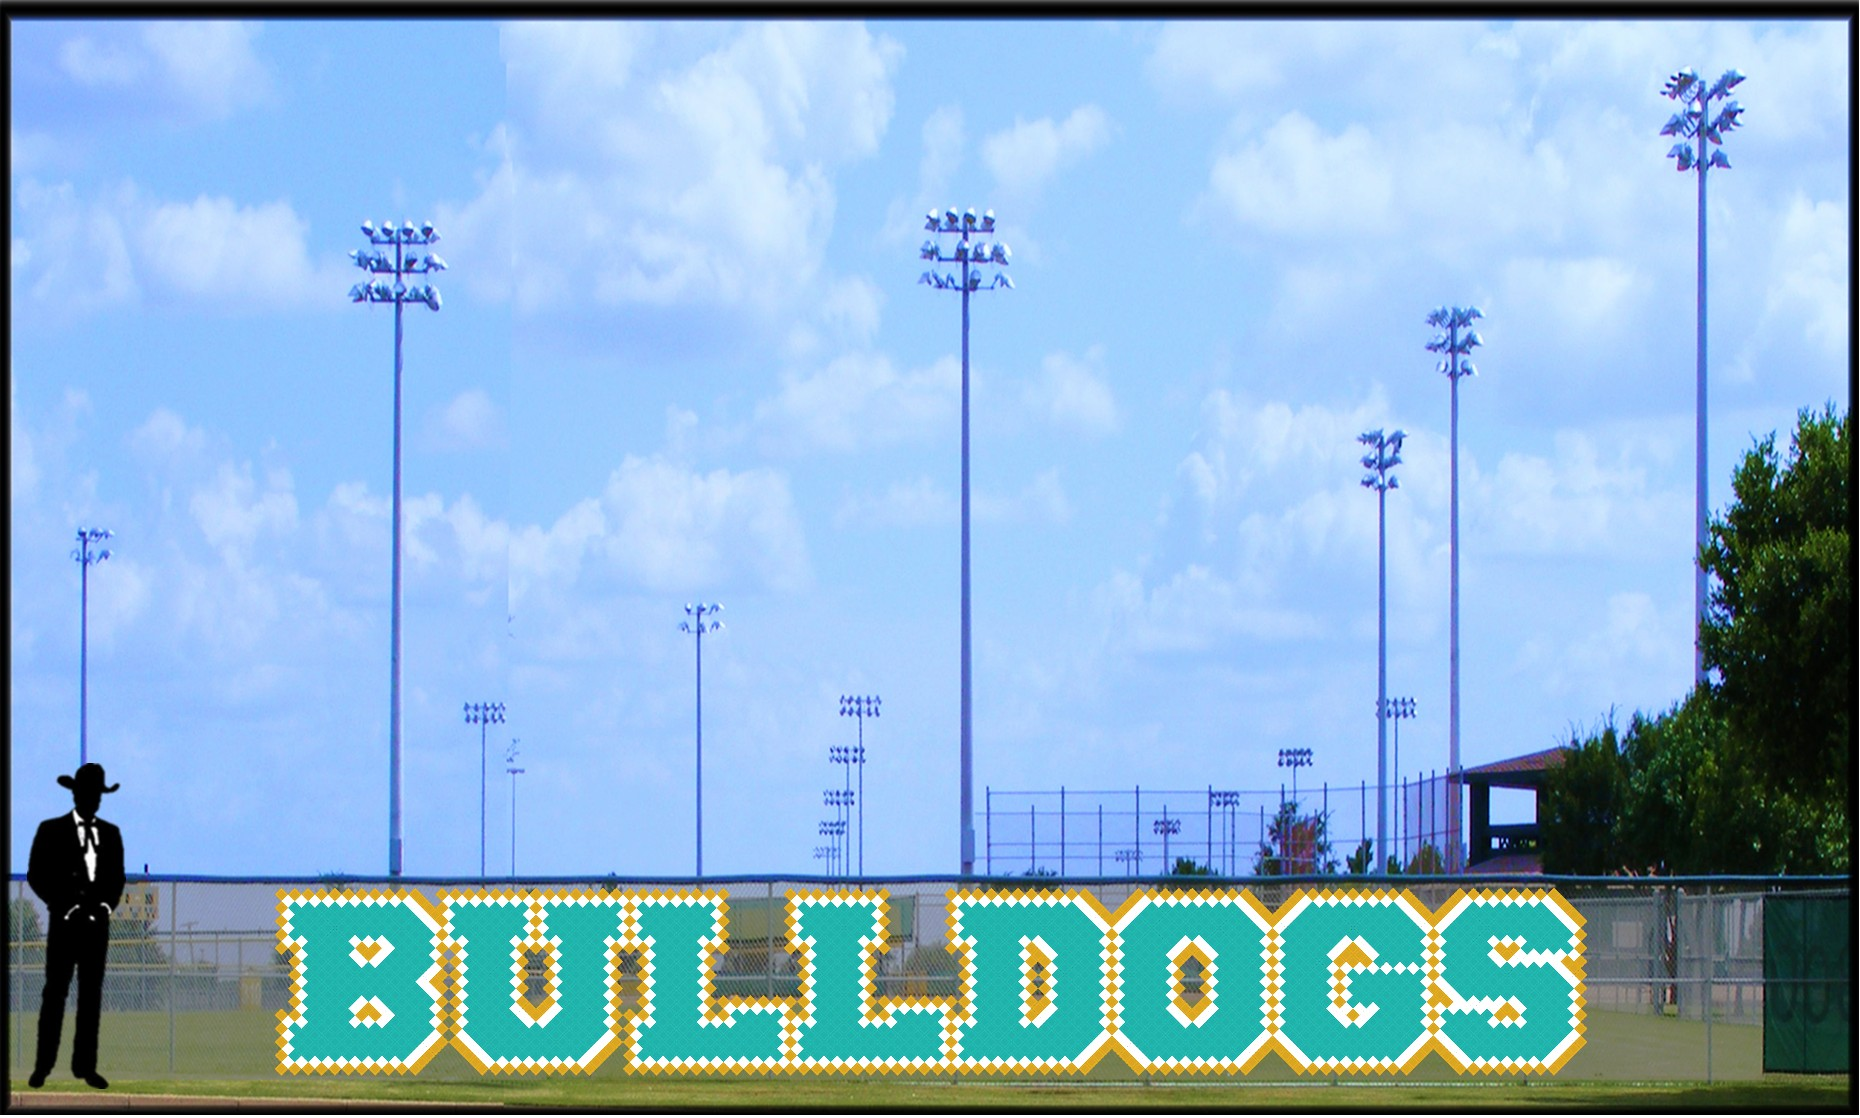 4' Bold Bulldogs Letters